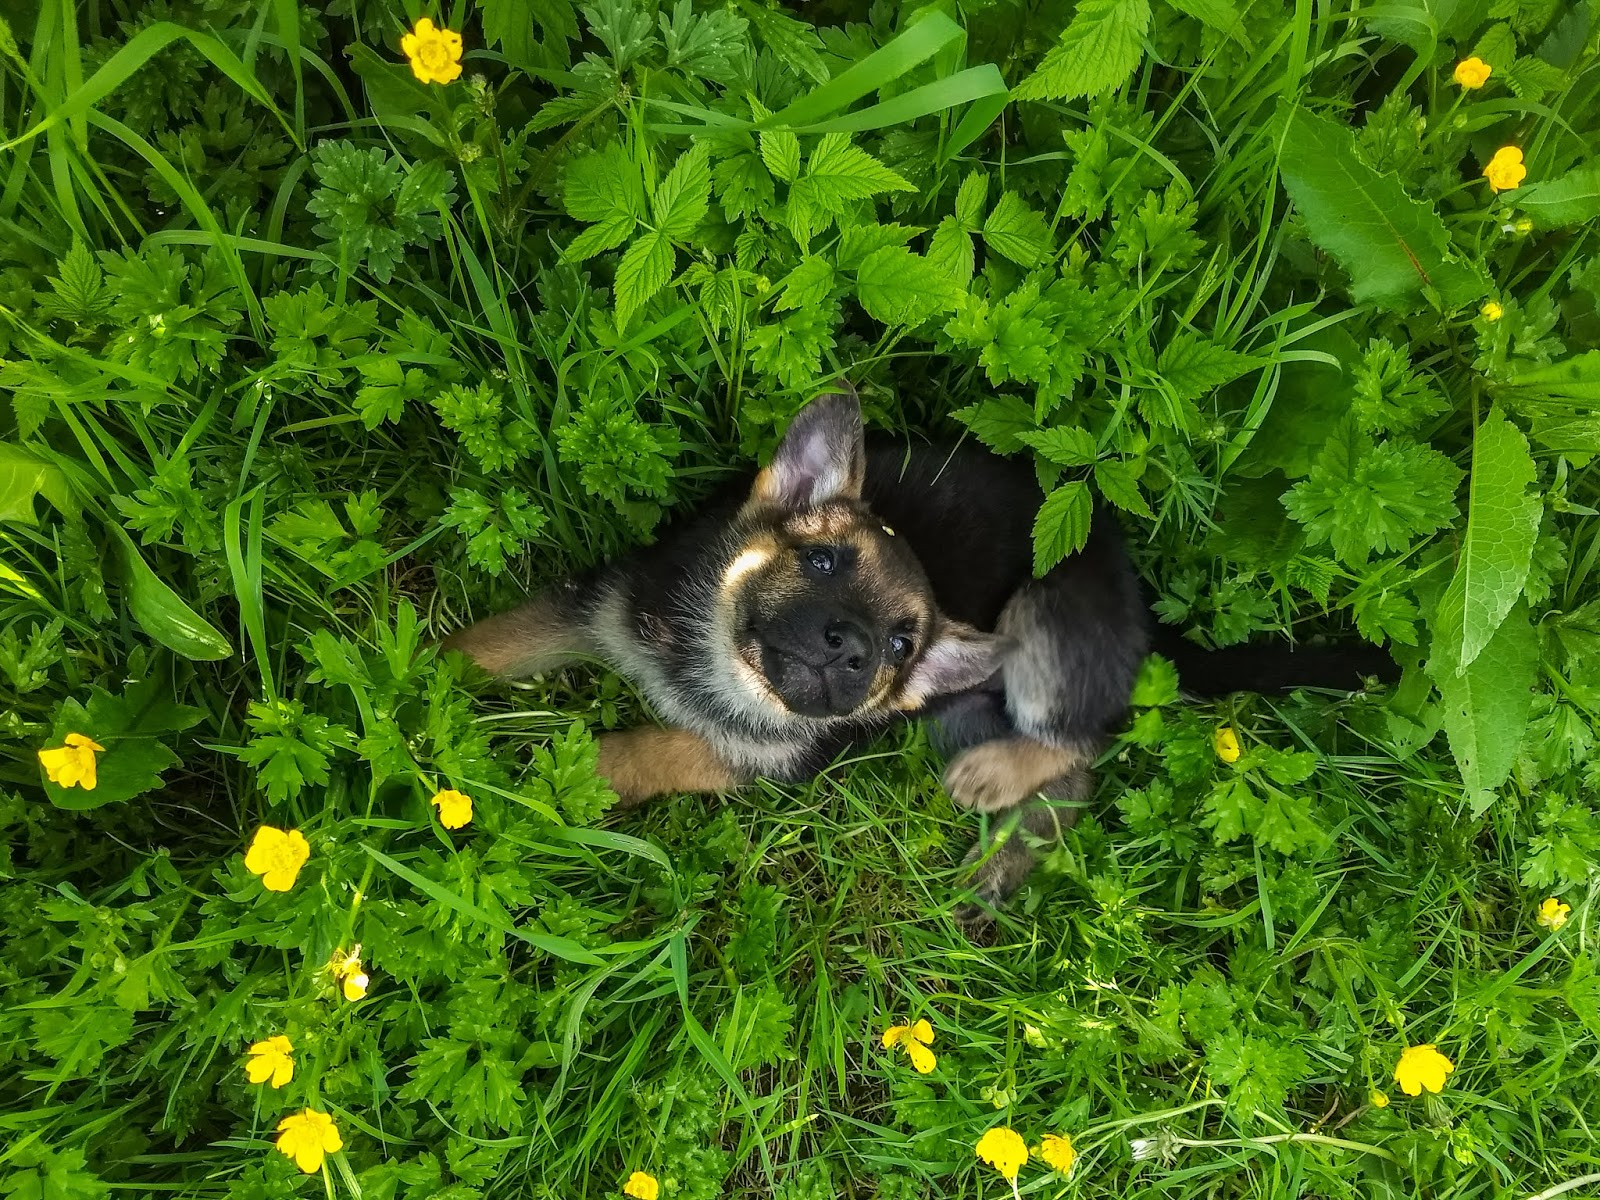 A German Shepherd puppy sitting in the grass looking up at the camera.